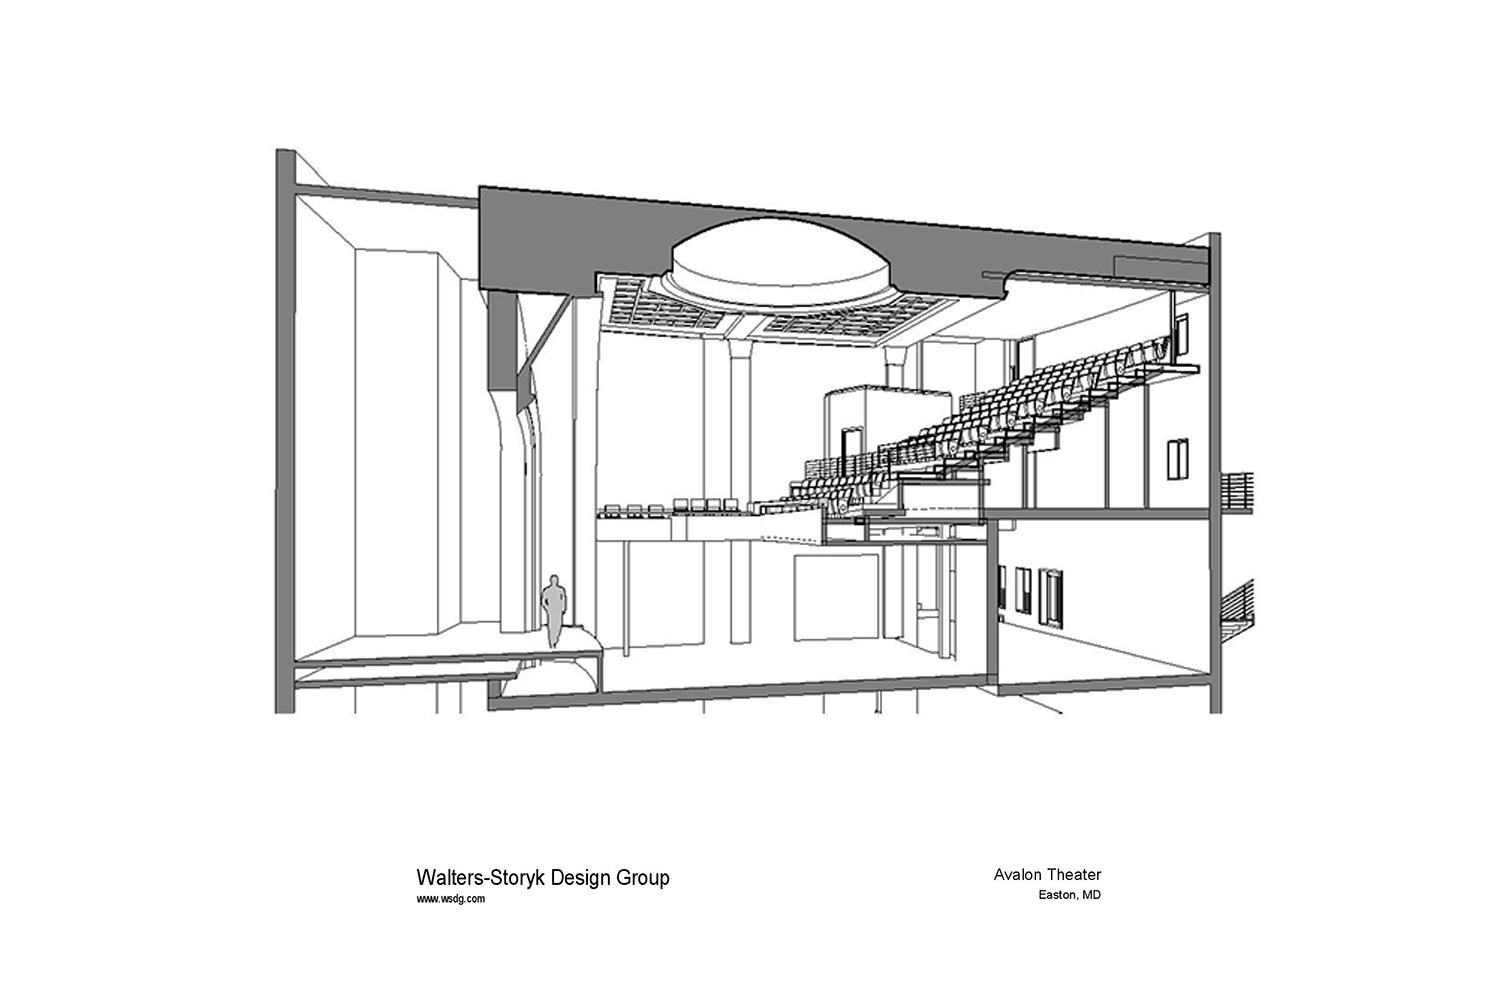 The Avalon Foundation, which runs the Avalon Theatre, secured the services of WSDG during a larger overall renovation initiative to update the theater's acoustics, production lighting, and audiovisual capabilities. Axonometric View.